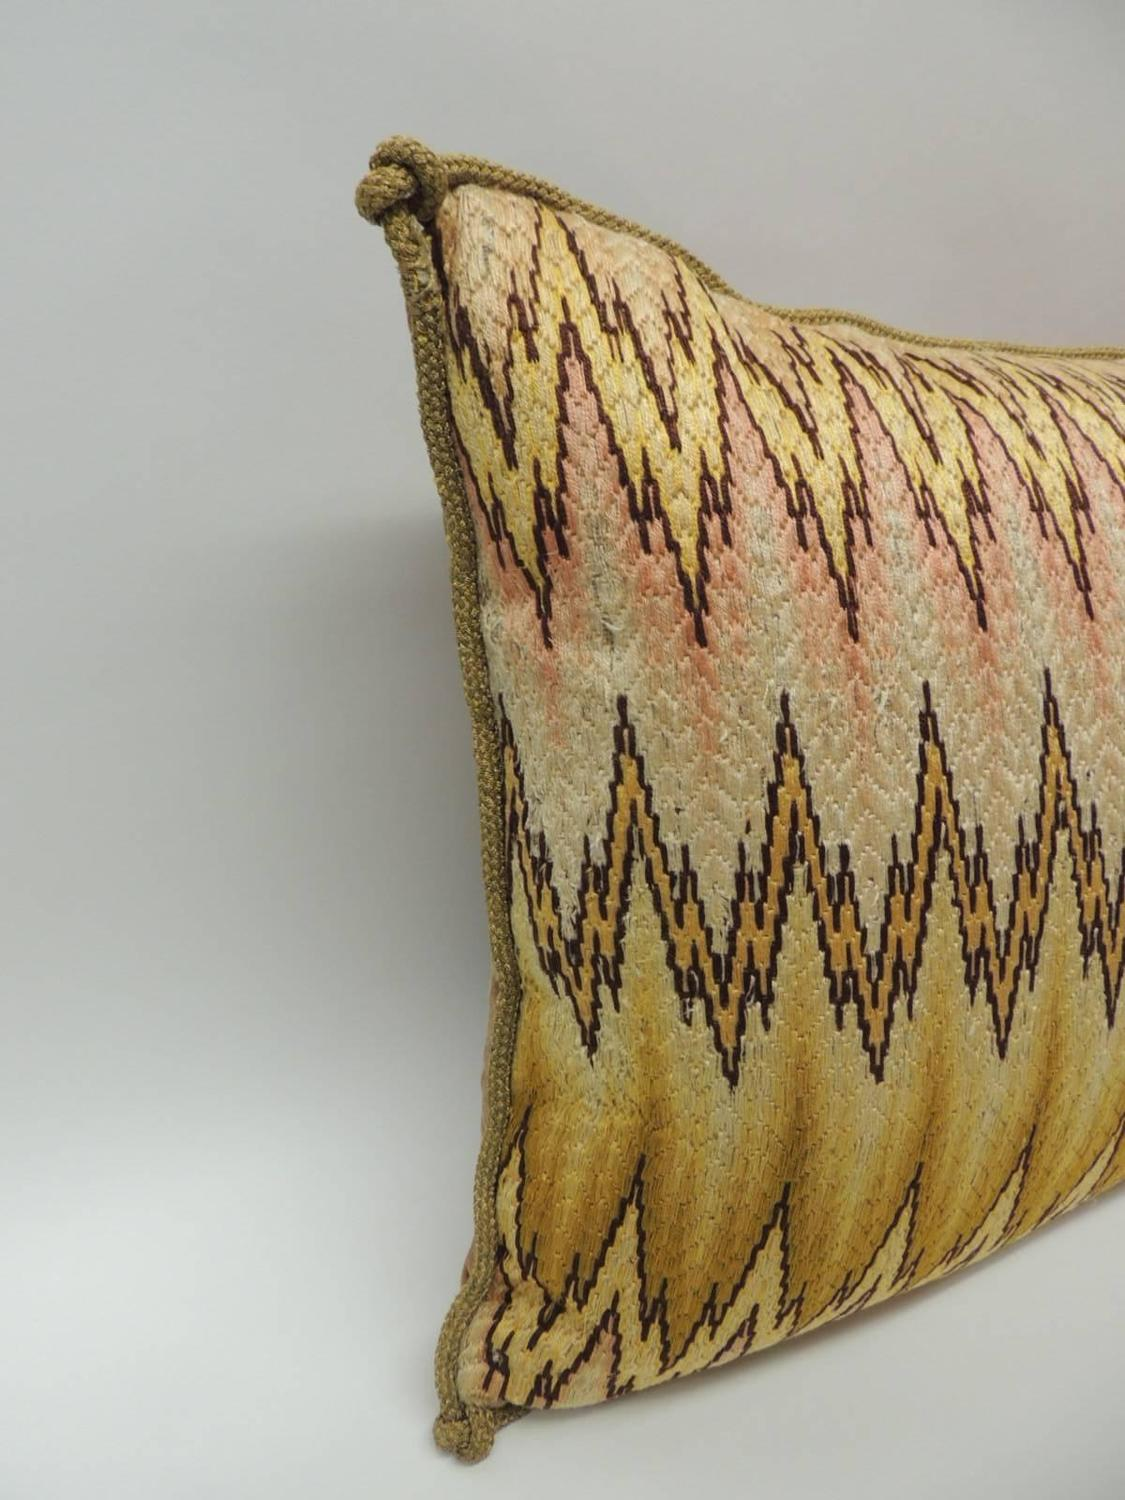 Large Decorative Bolster Pillows : 19th Century Large Italian Bargello Embroidery Bolster Decorative Pillow For Sale at 1stdibs